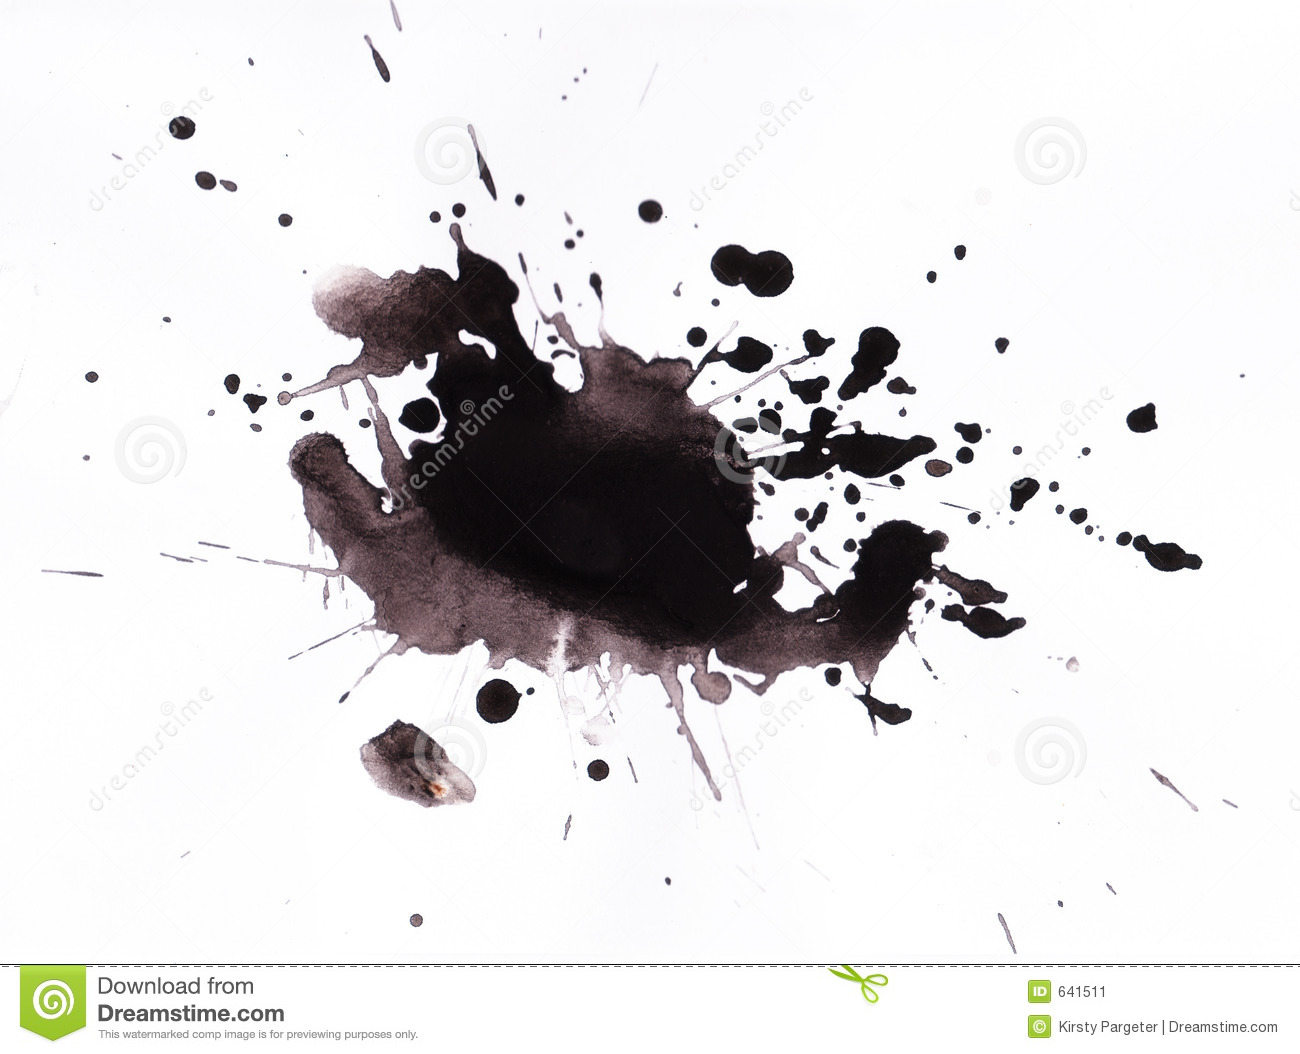 Ink Spill Stock Photos, Royalty-Free Images & Vectors - Shutterstock